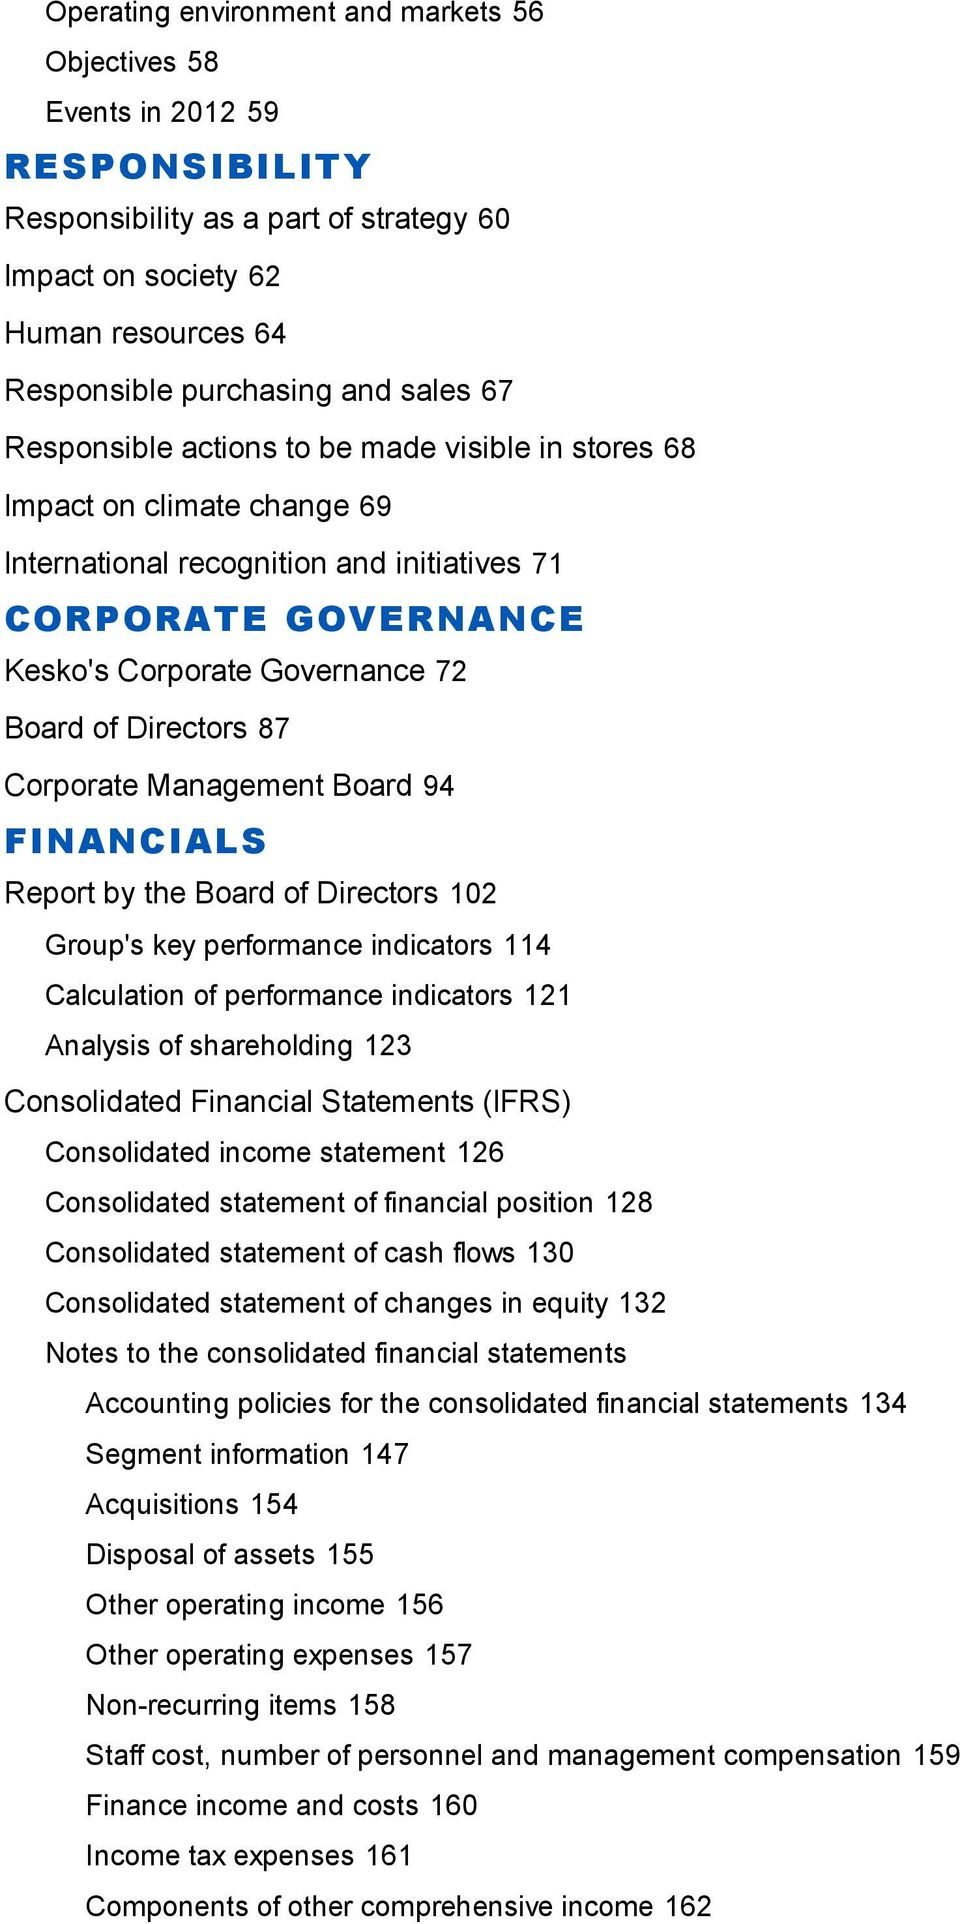 Corporate Management Board 94 FINANCIALS Report by the Board of Directors 102 Group's key performance indicators 114 Calculation of performance indicators 121 Analysis of shareholding 123